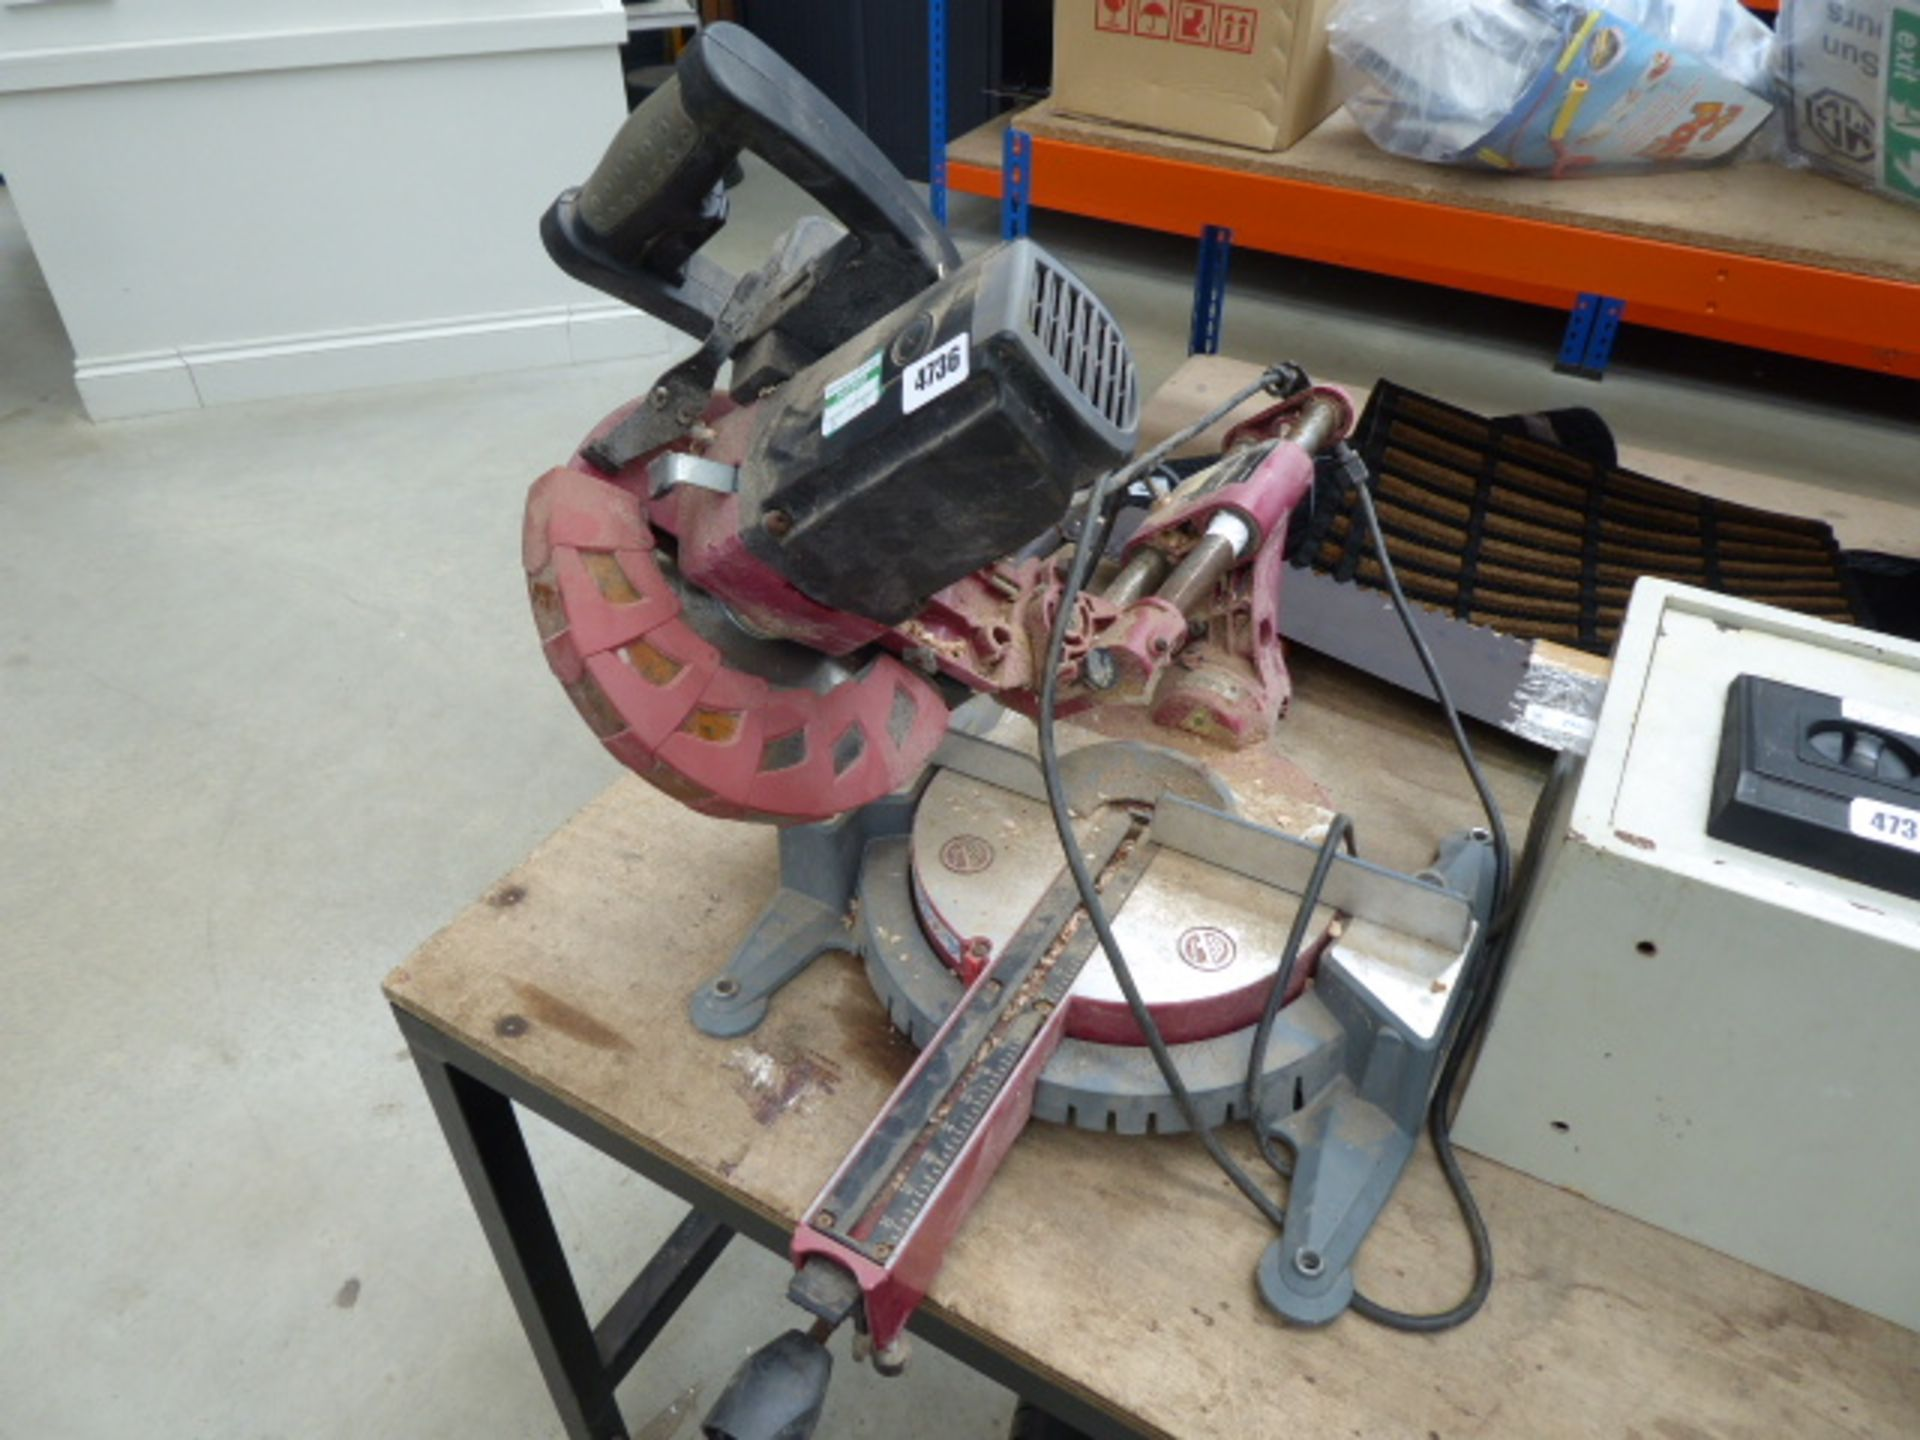 Lot 4736 - Red Einhell electric chopsaw